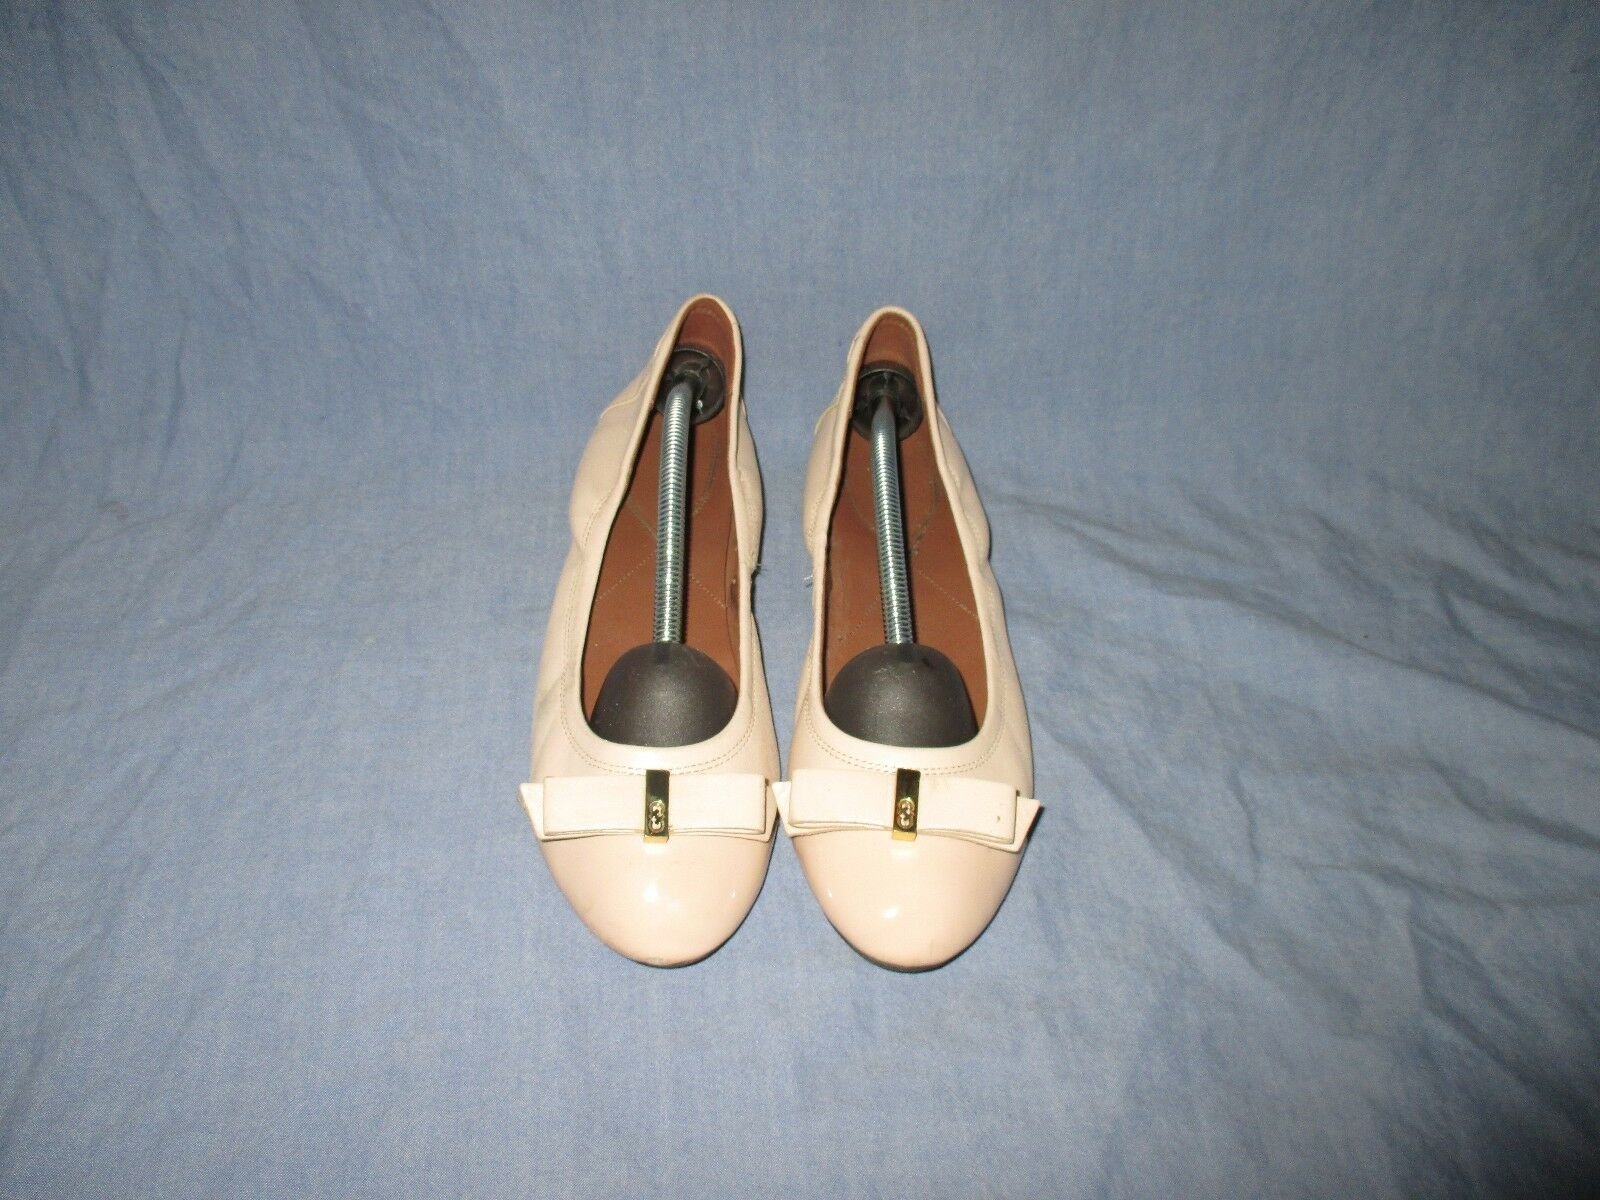 Cole Haan Monica Leather  Ballet Flats Bow Cap Toe Toe Toe Size 9.5 B 7a598f